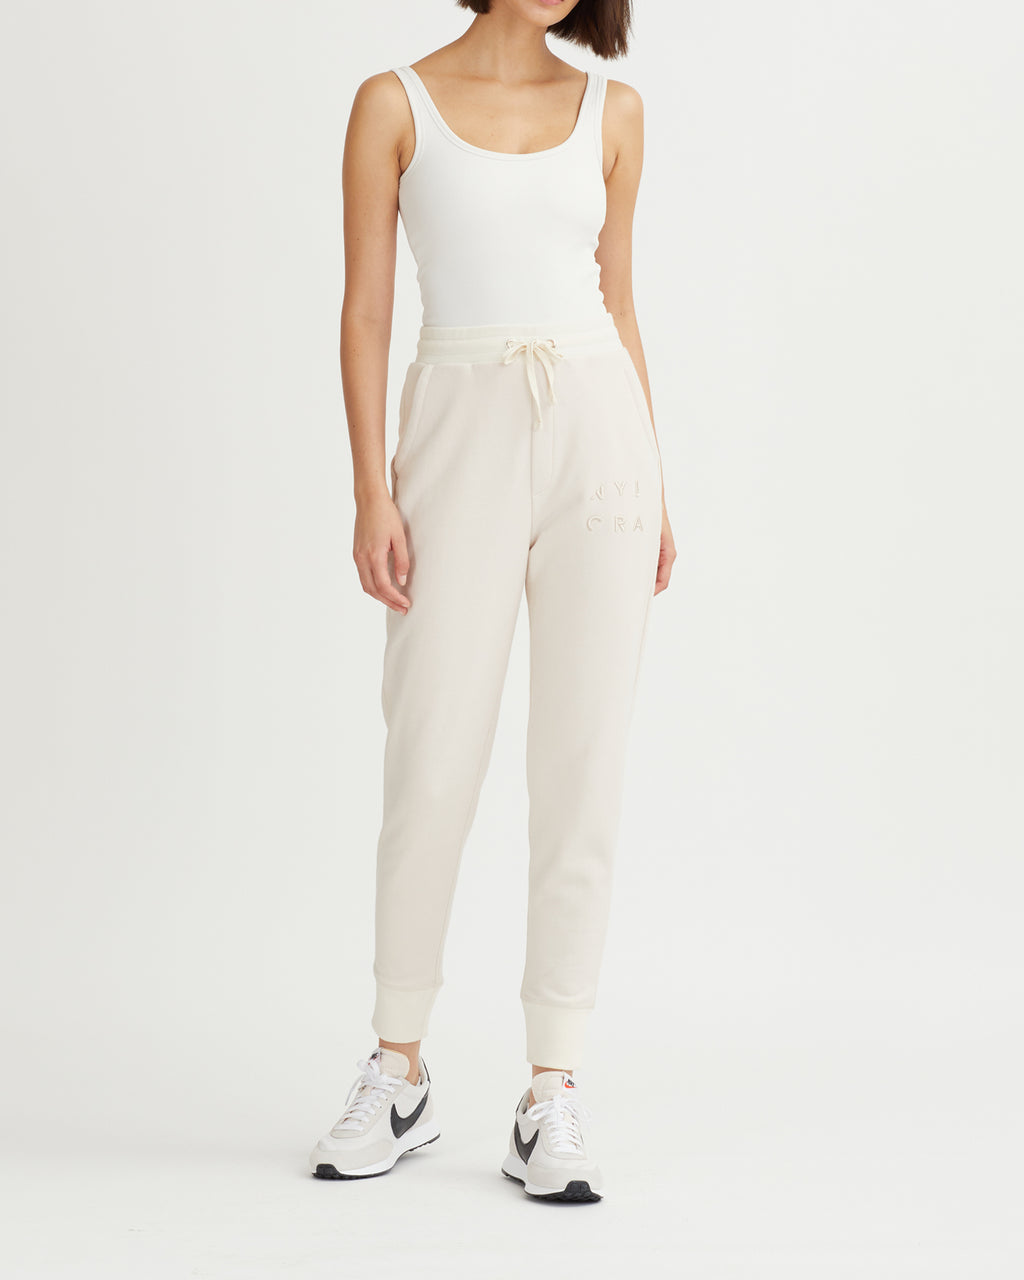 SADE PANTS BONE WHITE